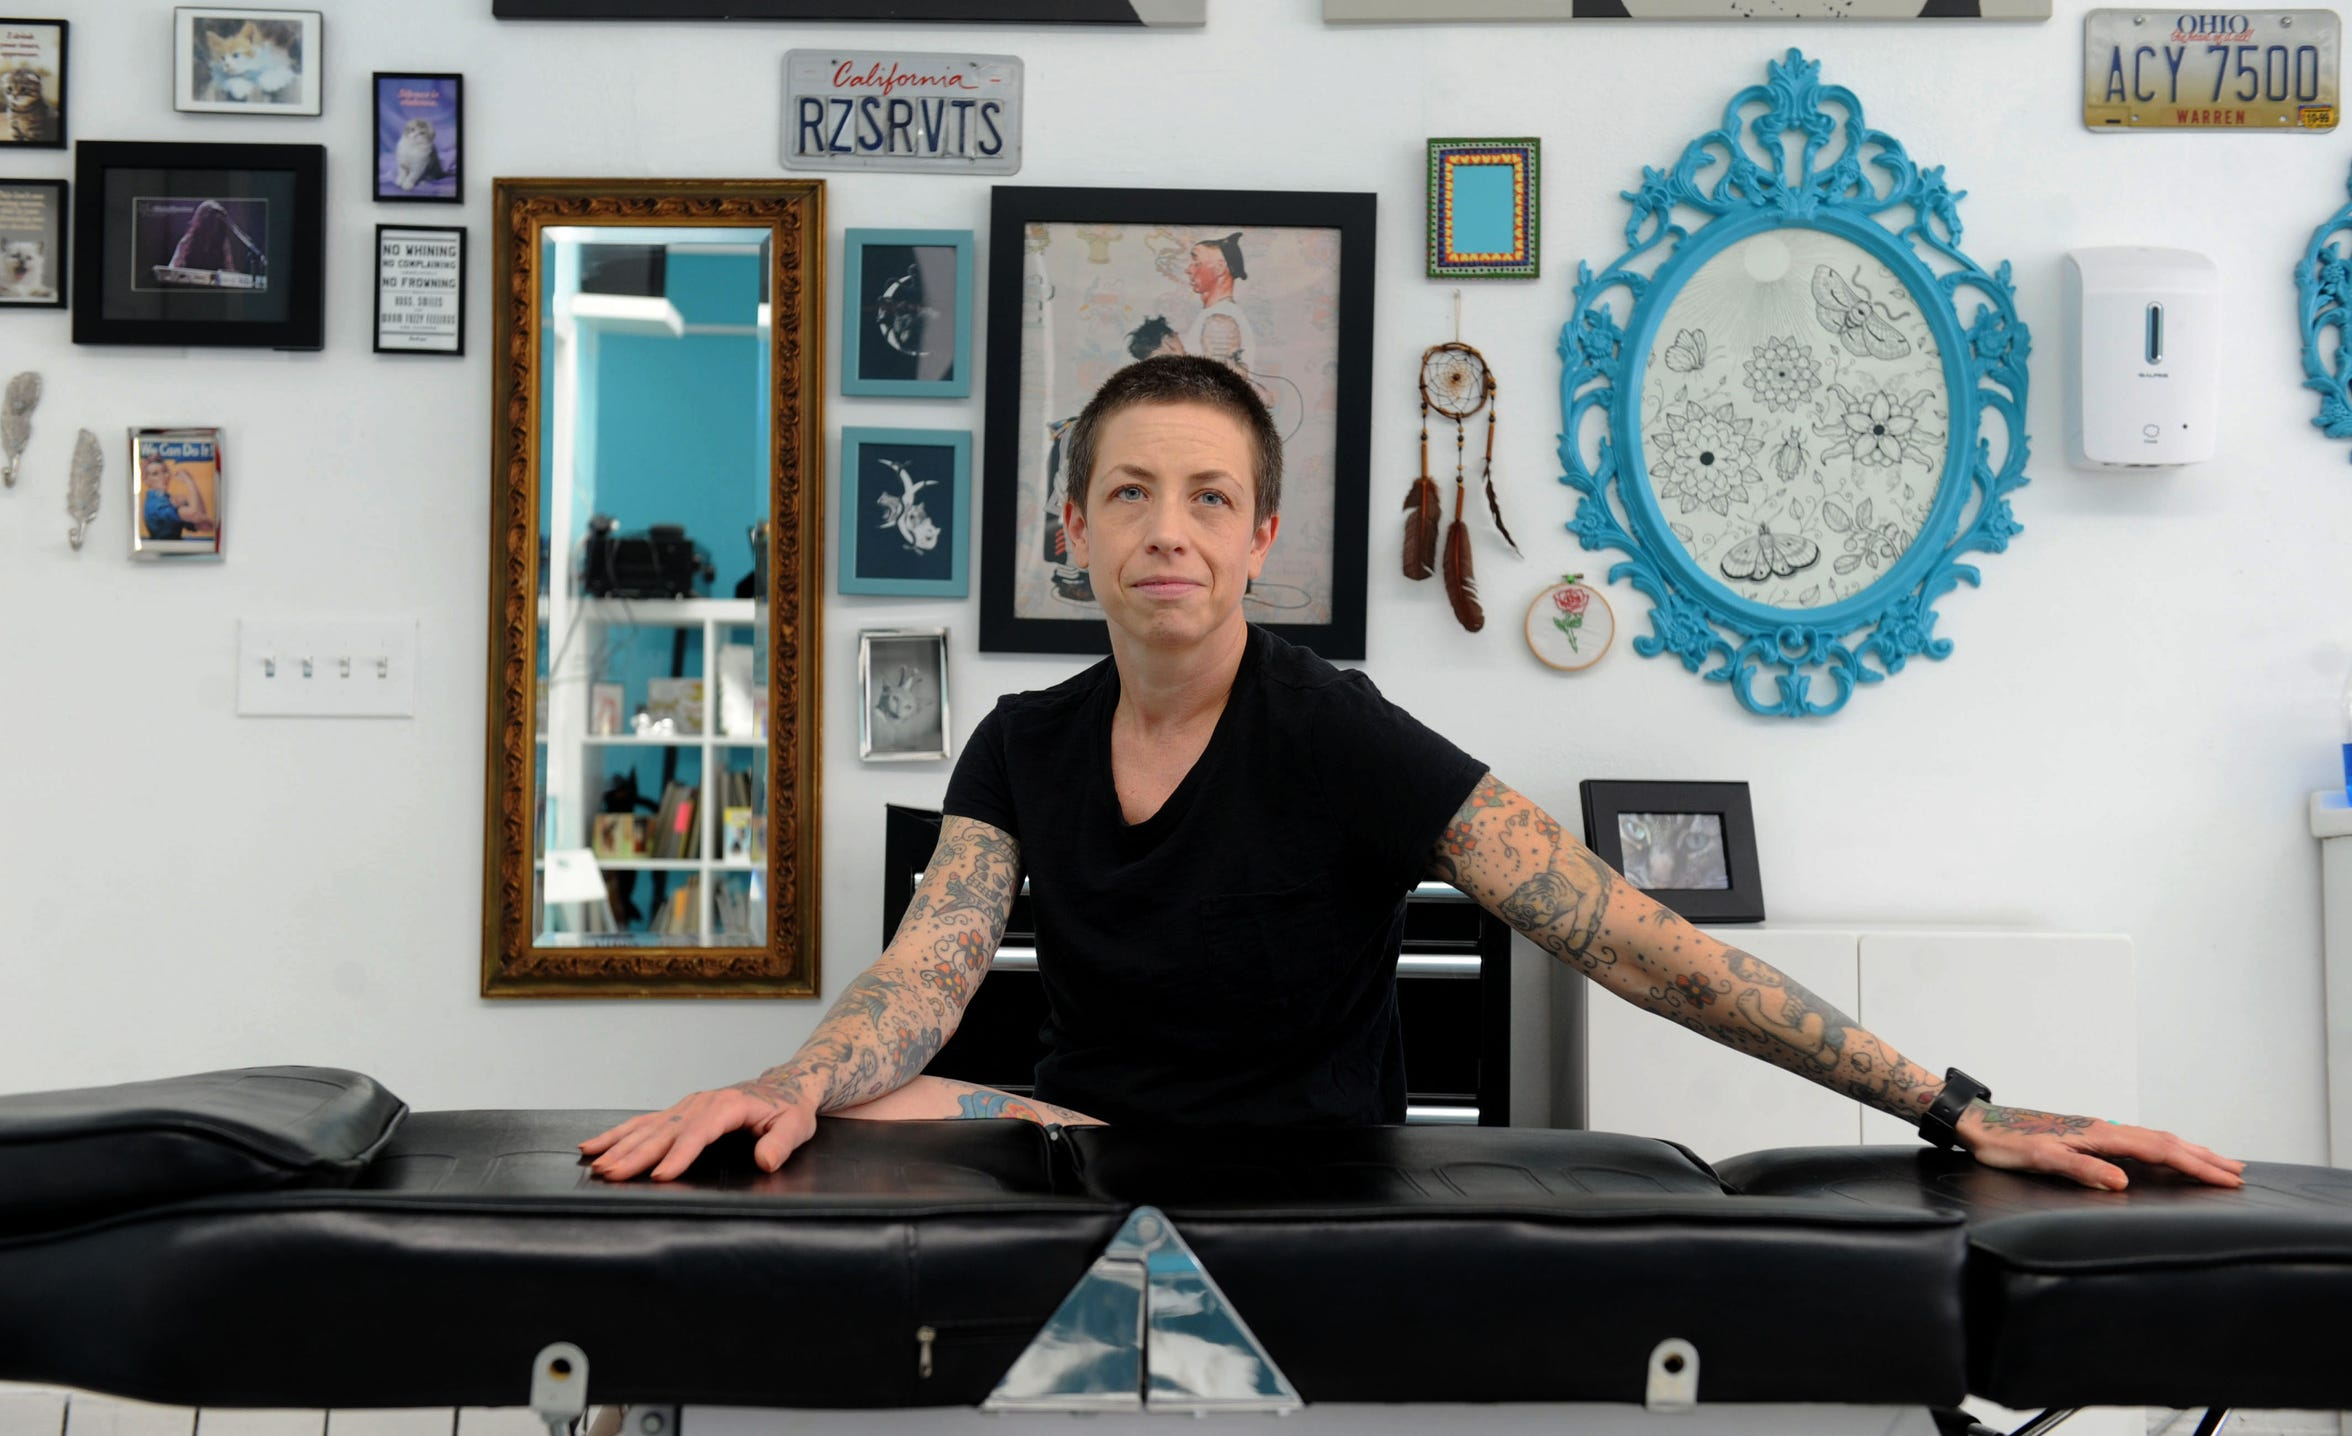 Stephanie Sparrow, owner of Roses and Rivets in Santa Paula, has not been allowed to open her tattoo business because of the coronavirus.